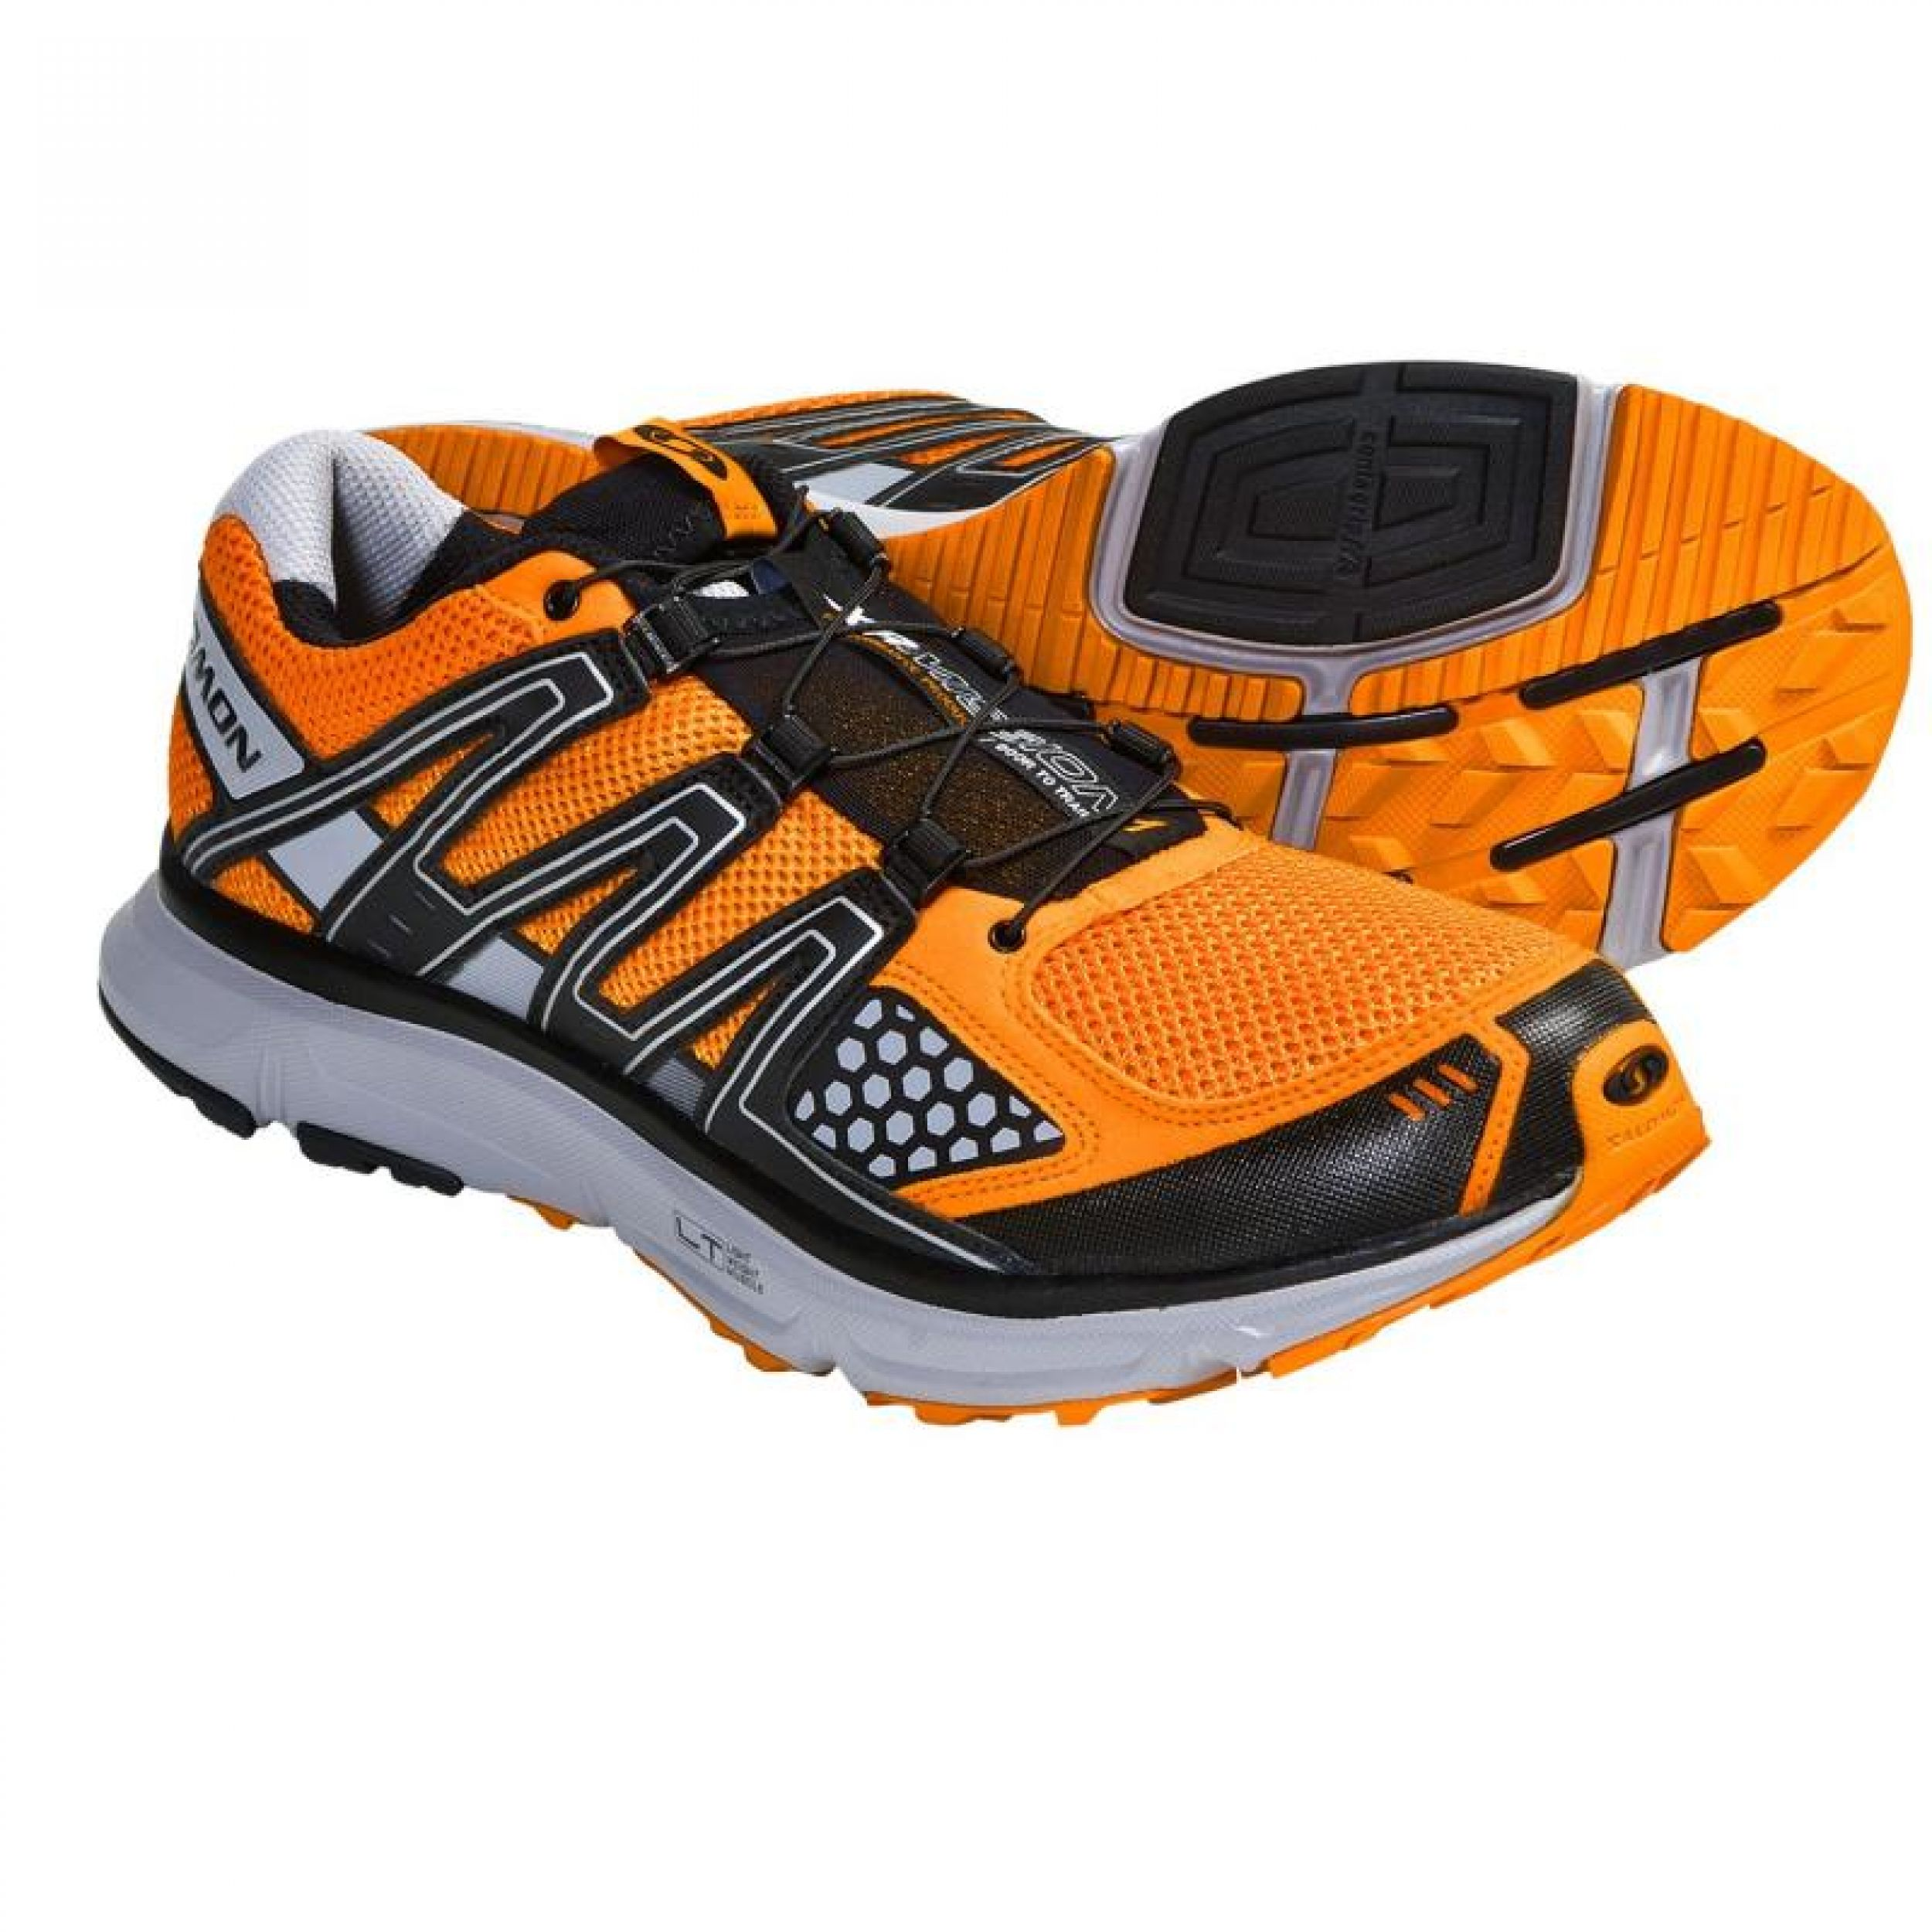 salomon-xr-mission-trail-running-shoes-for-men-in-black-yellowp5968w_021500.2.jpg